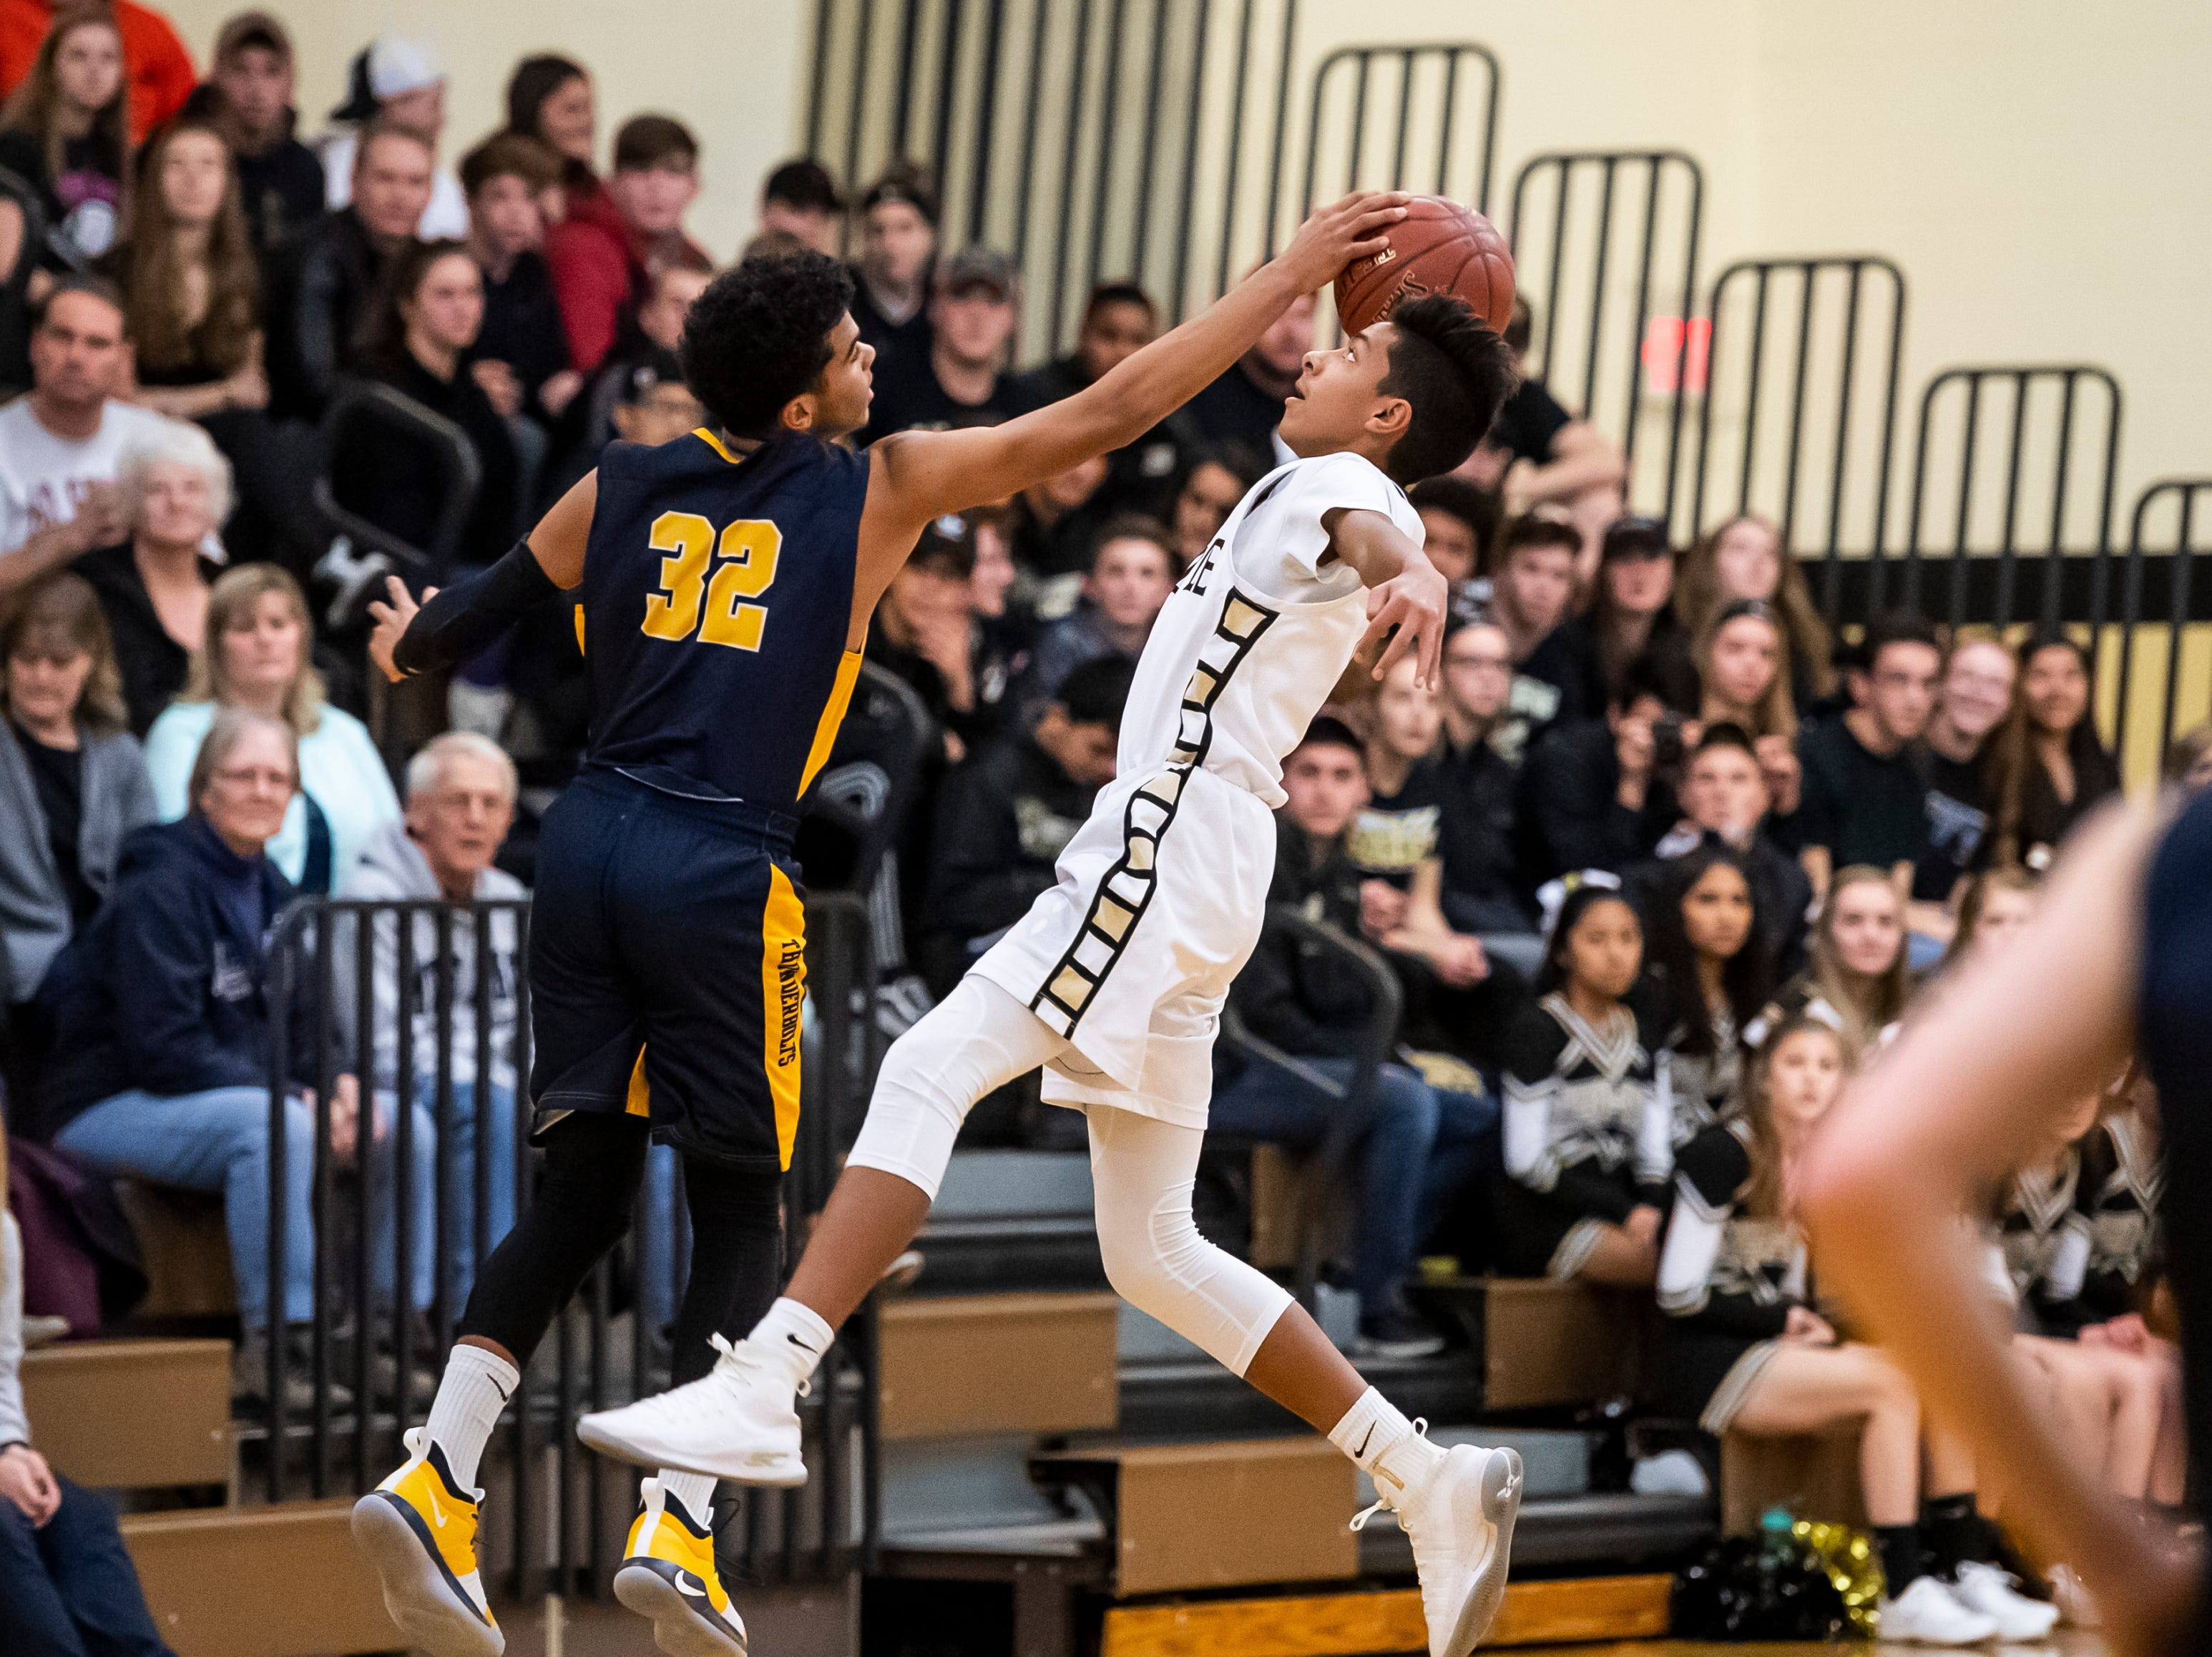 Littlestown's Jayden Weishaar steals the ball from Biglerville's Jorge Cervantes on Friday, January 11, 2019. The Bolts won 65-38.